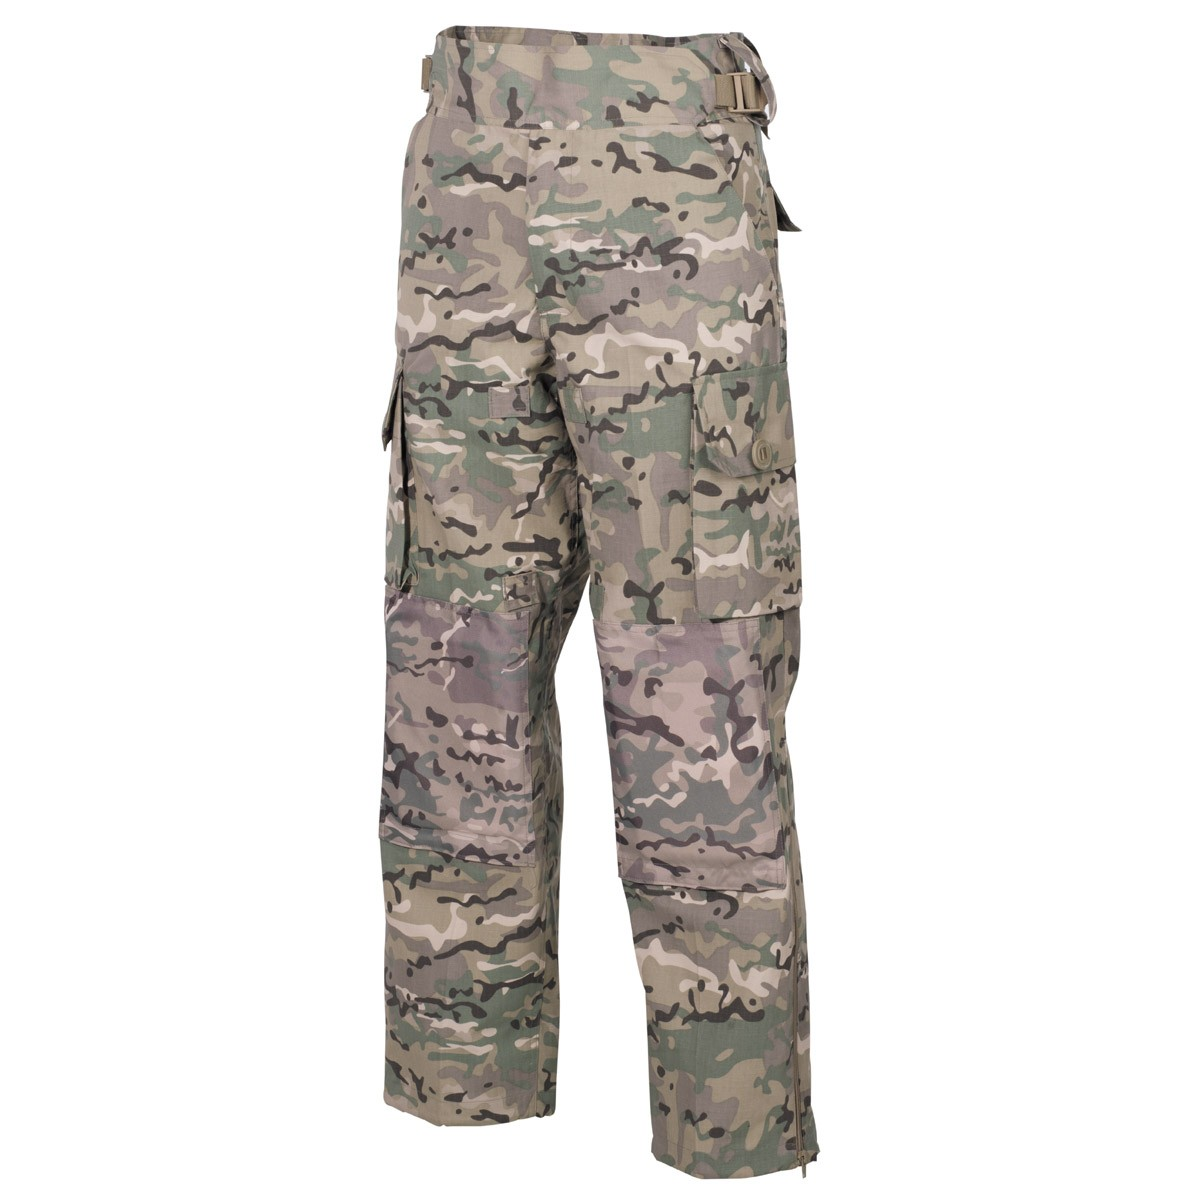 Premium Tactical Military Battle Trousers COMMANDOS - Multicam